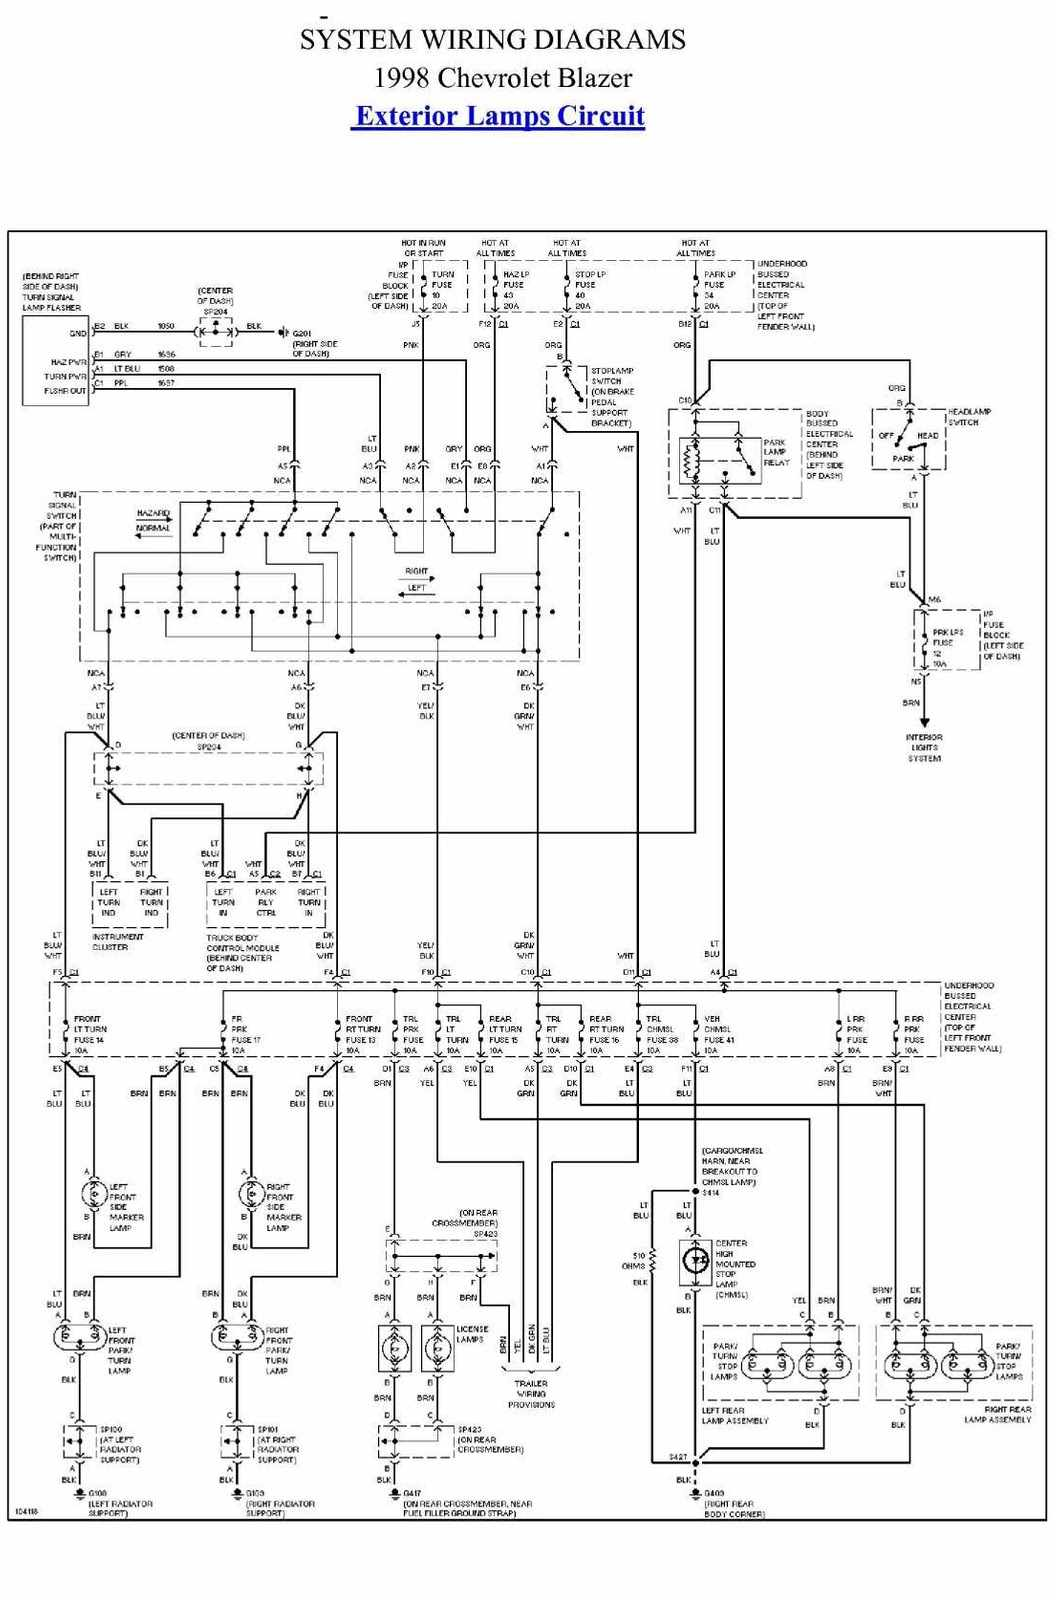 Exterior Lamp Circuit Diagram Of 1998 Chevrolet Blazer